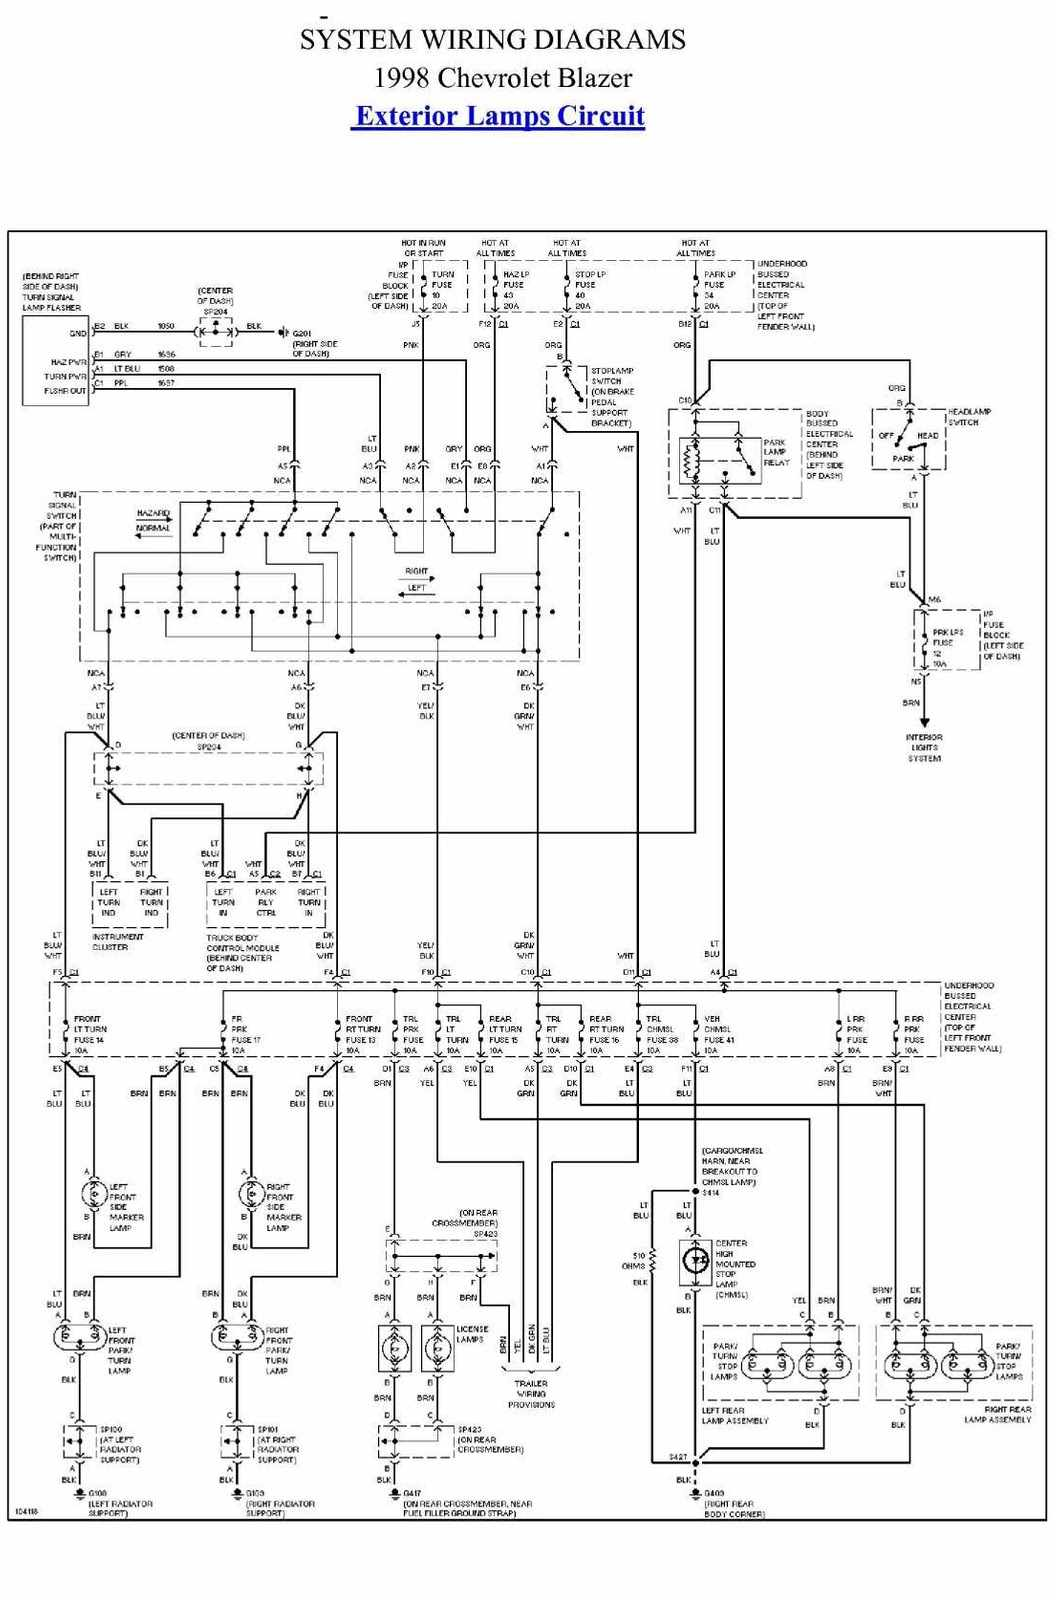 Exterior Lamp Circuit Diagram Of 1998 Chevrolet Blazer